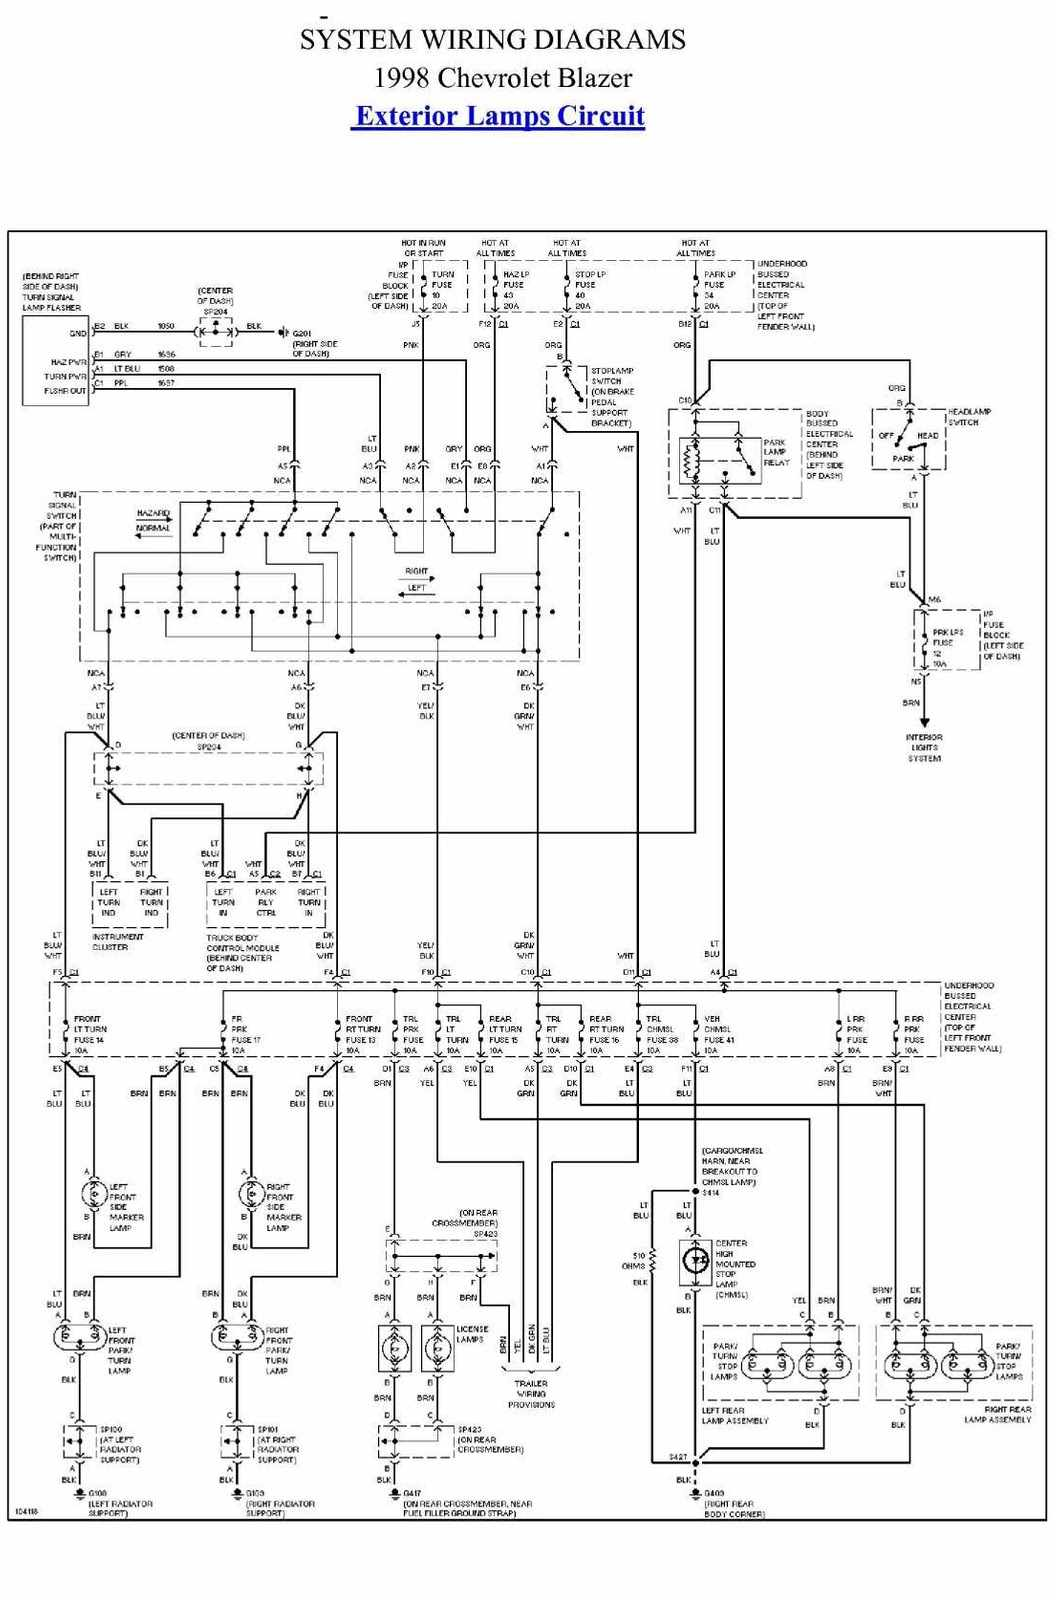 Exterior Lamp Circuit Diagram Of 1998 Chevrolet Blazer